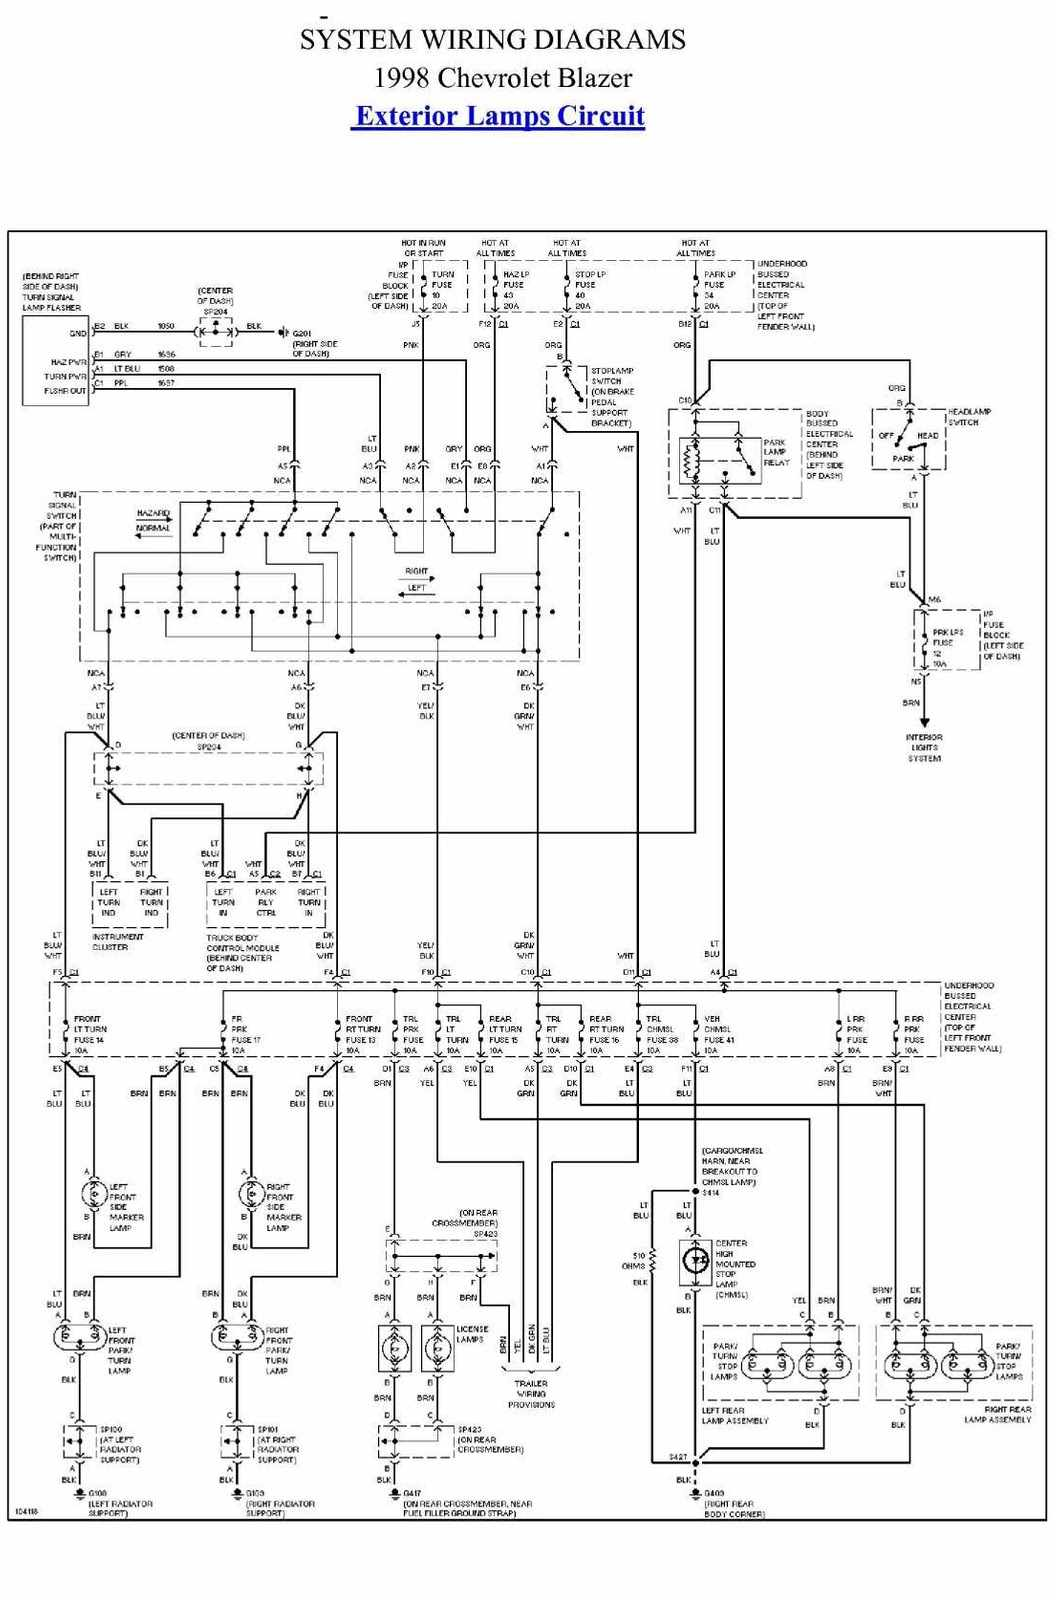 Exterior Lamp Circuit Diagram Of 1998 Chevrolet Blazer